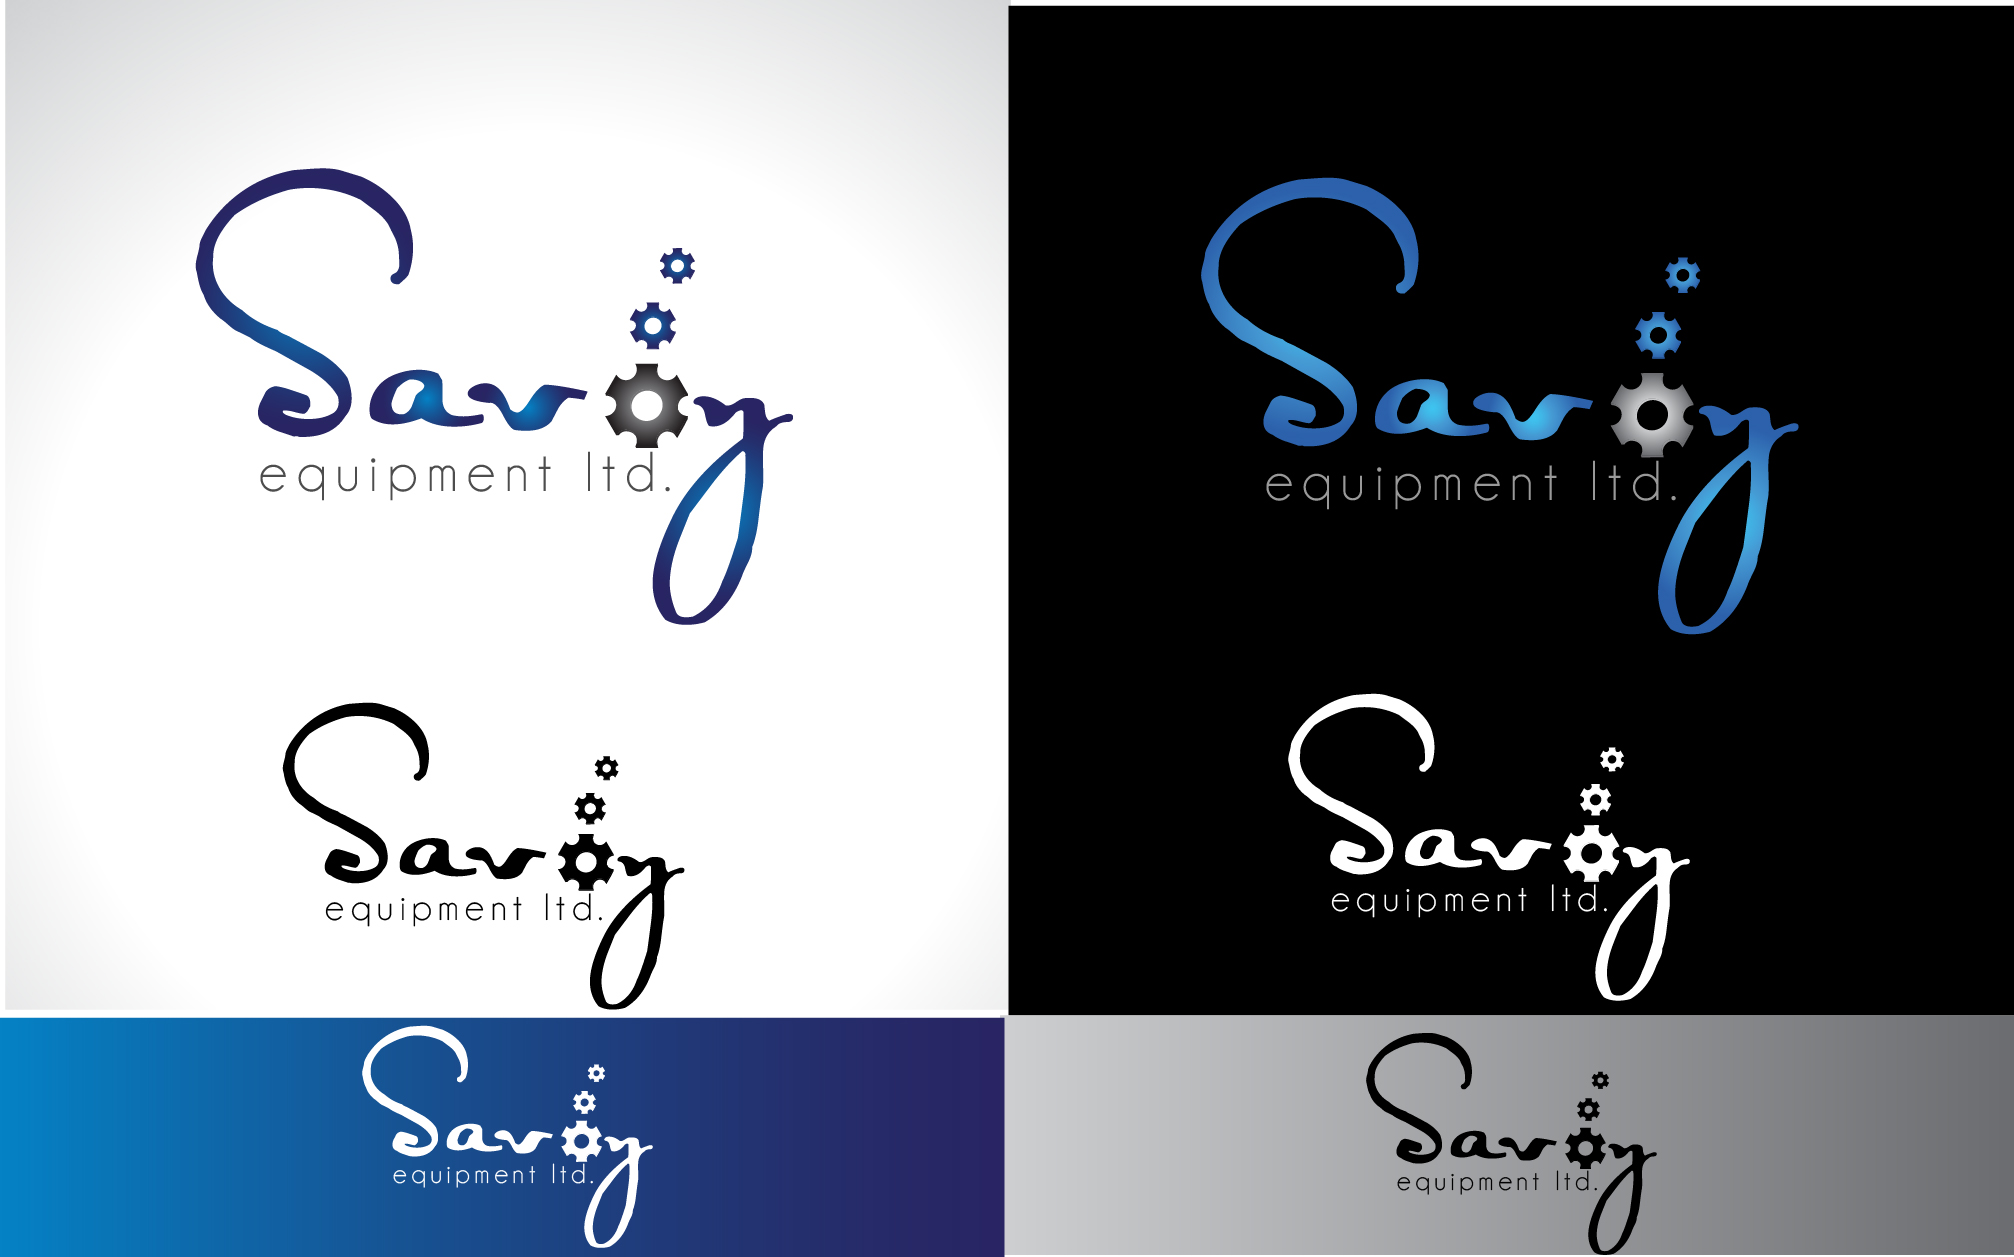 Logo Design by Darina Dimitrova - Entry No. 25 in the Logo Design Contest Inspiring Logo Design for Savoy Equipment Ltd..